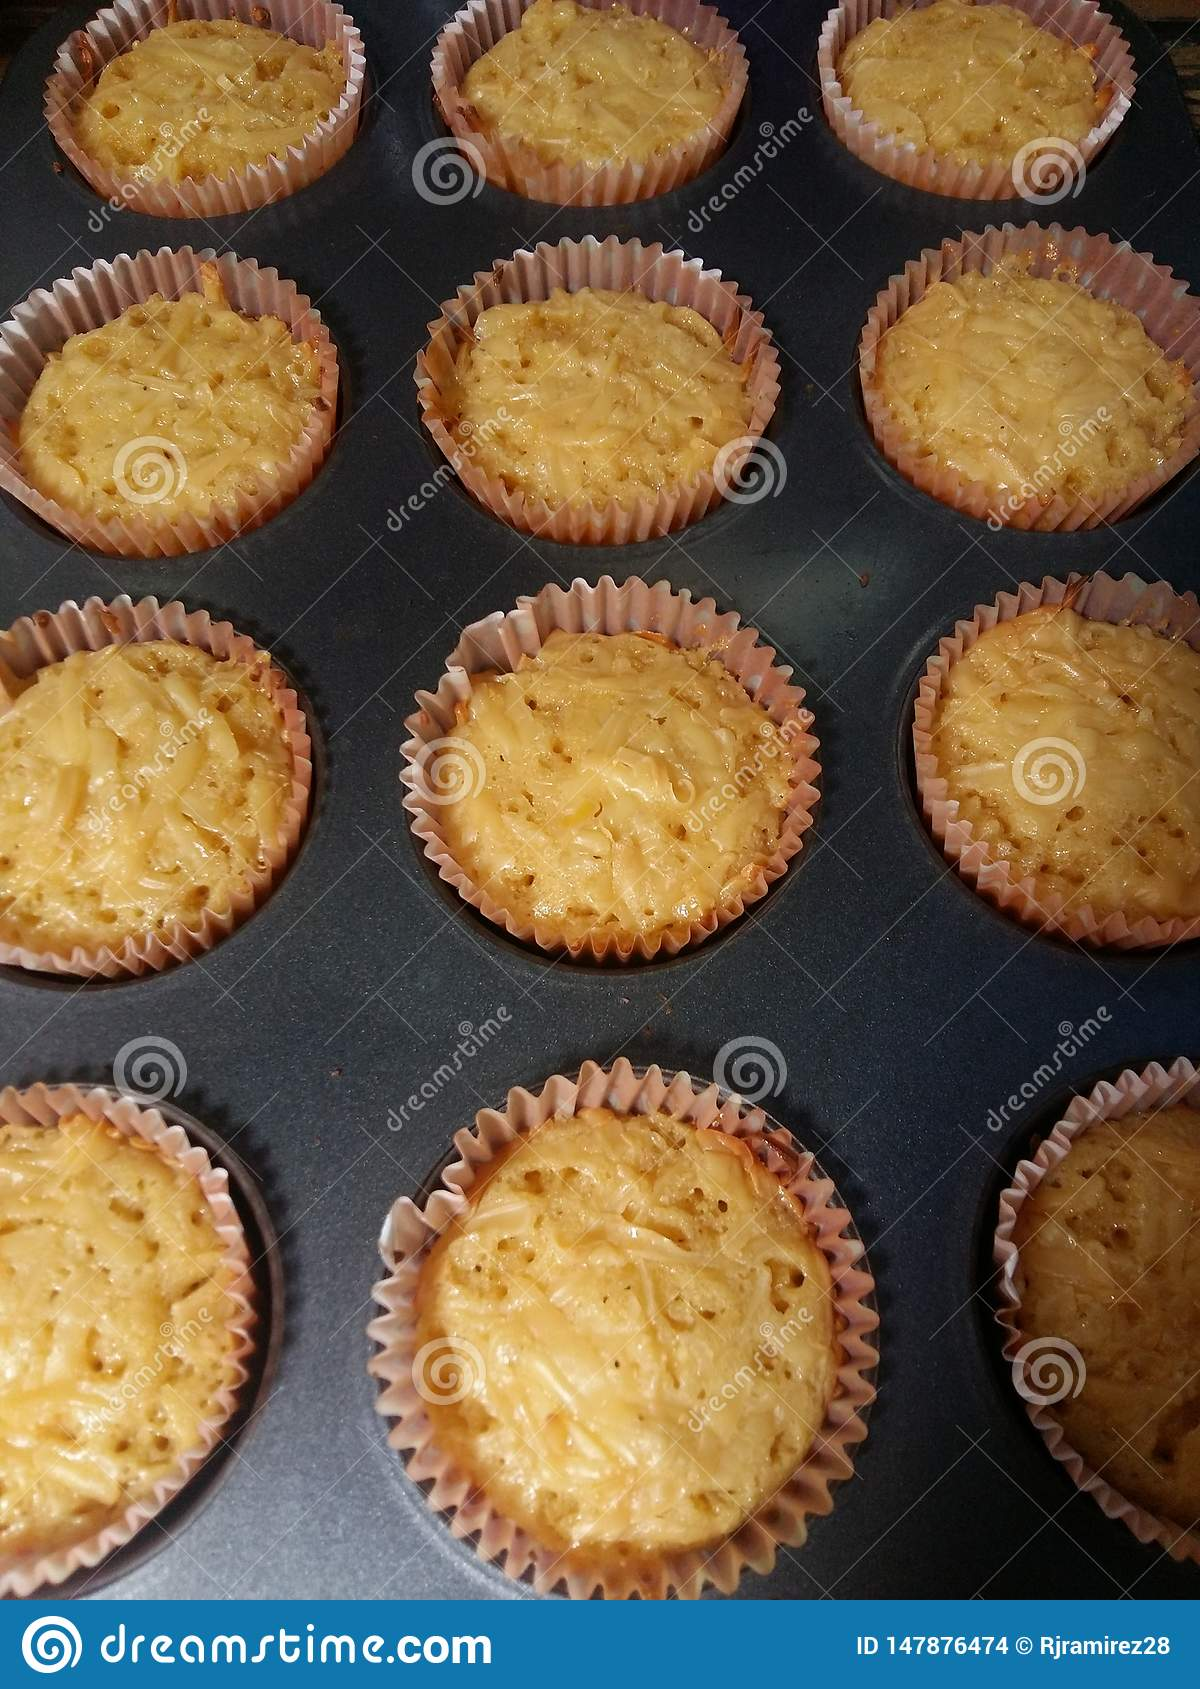 Cheesy cheese cupcakes